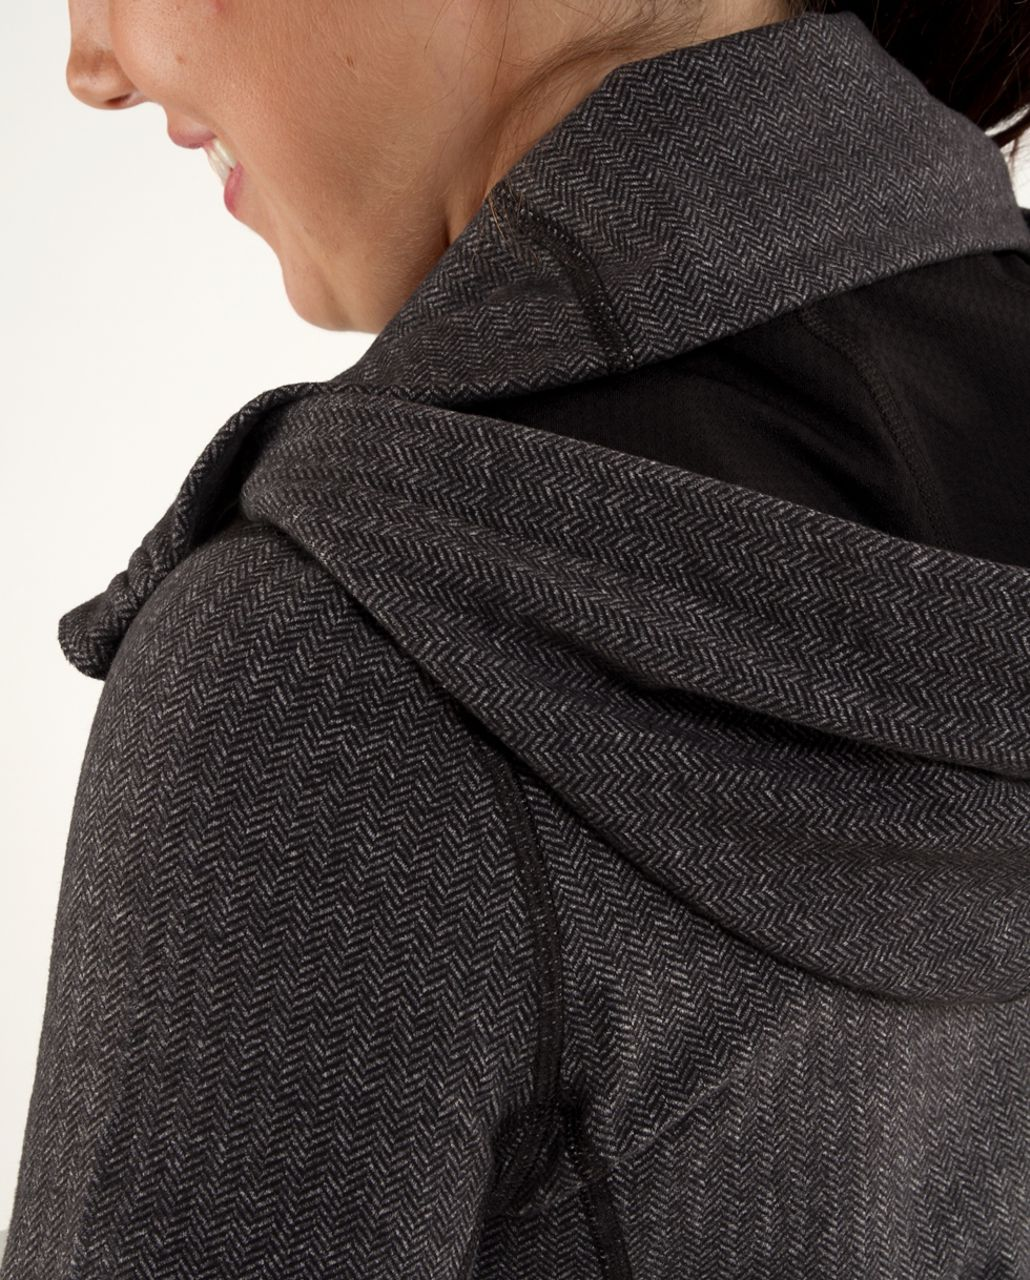 Lululemon Stride Jacket *Brushed - Black Heathered Deep Coal Herringbone /  Black